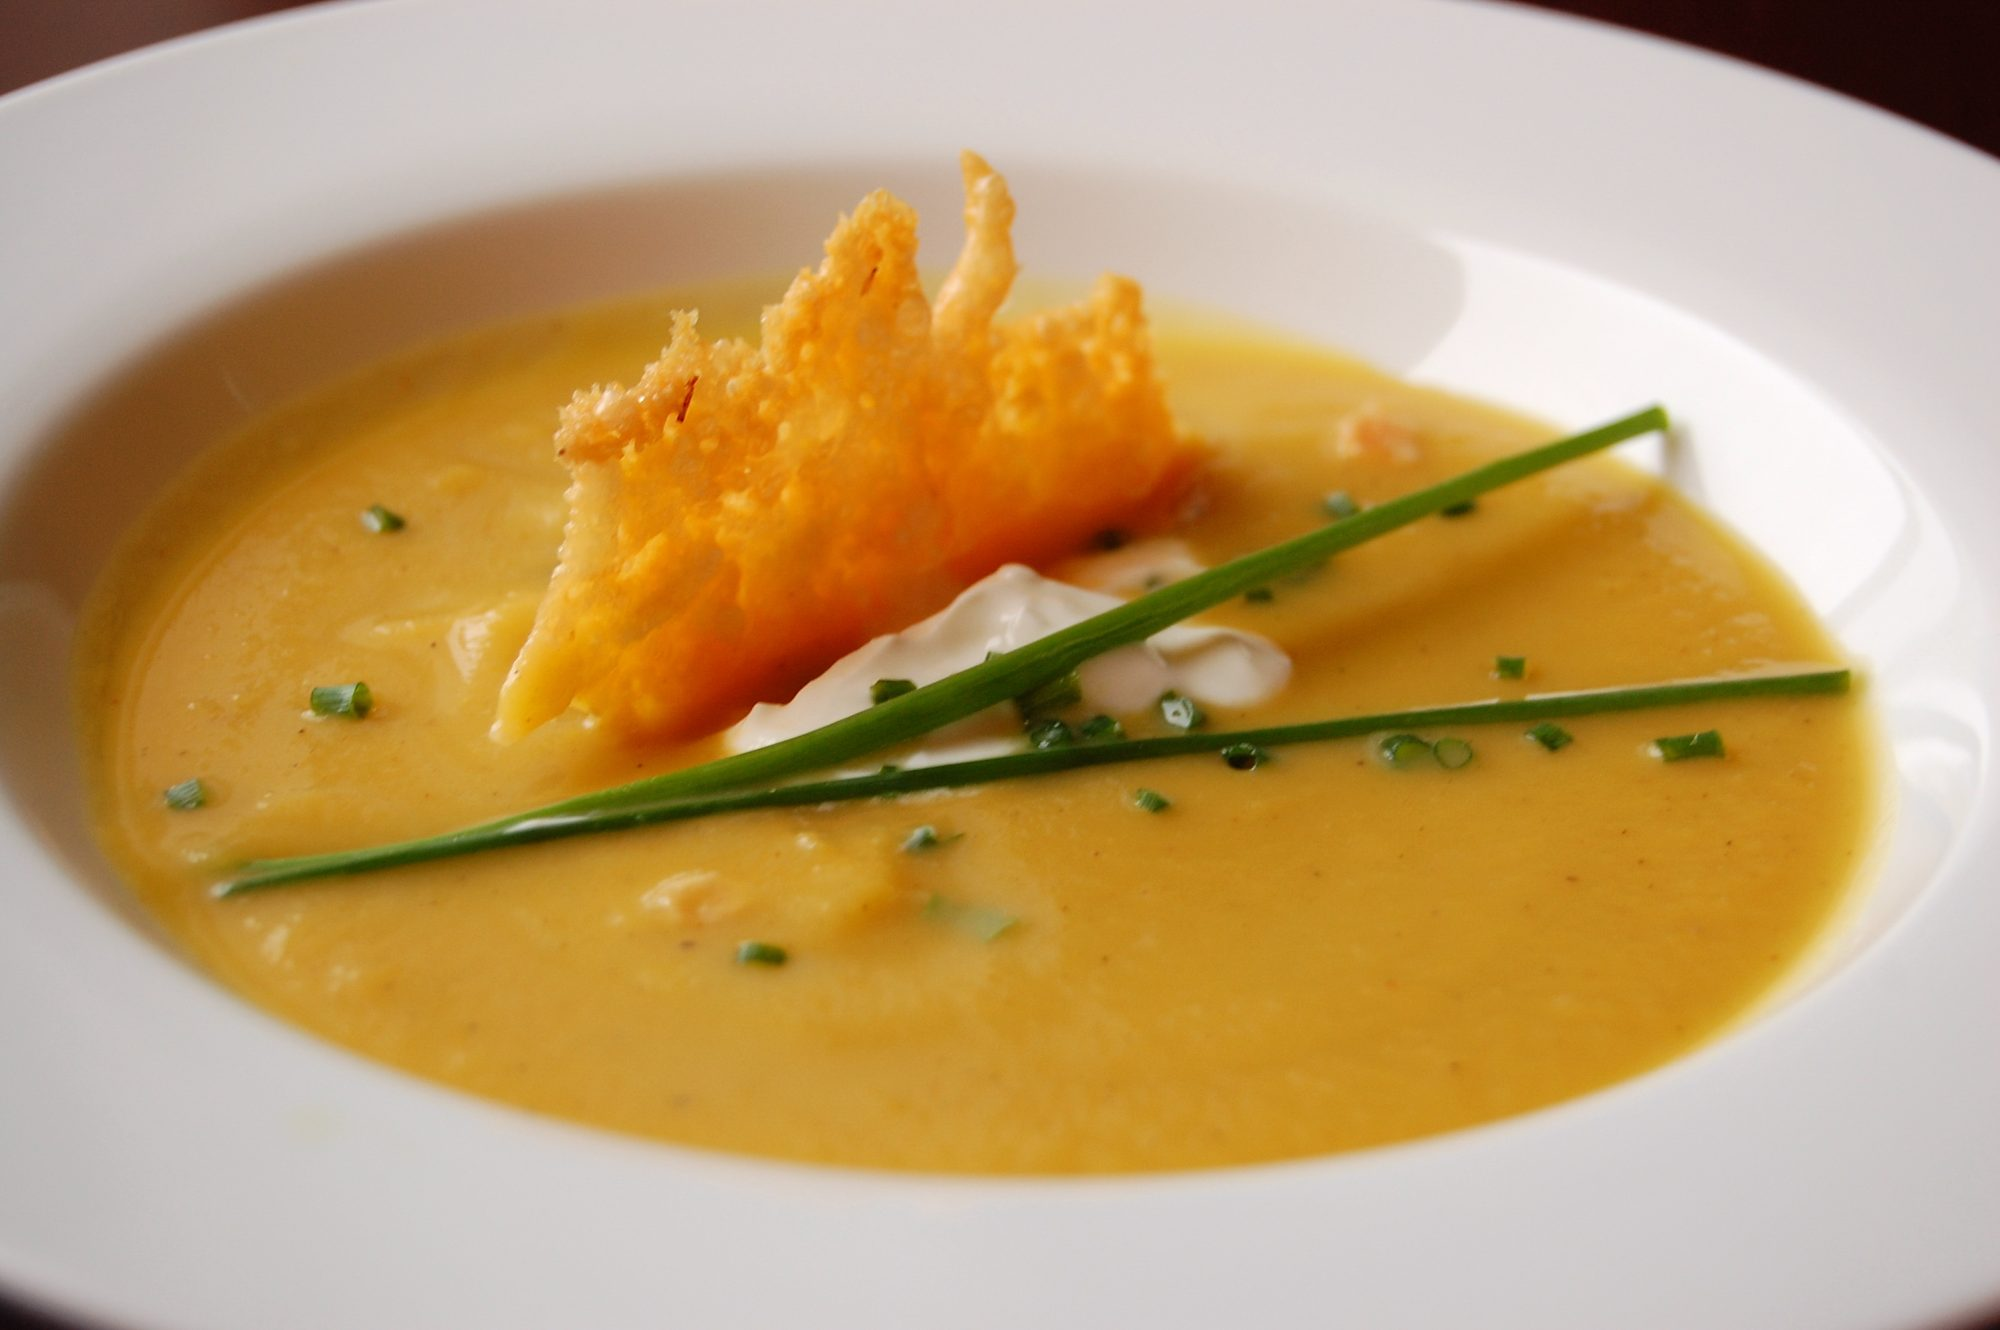 closeup of thick golden soup in a white bowl with garnishes